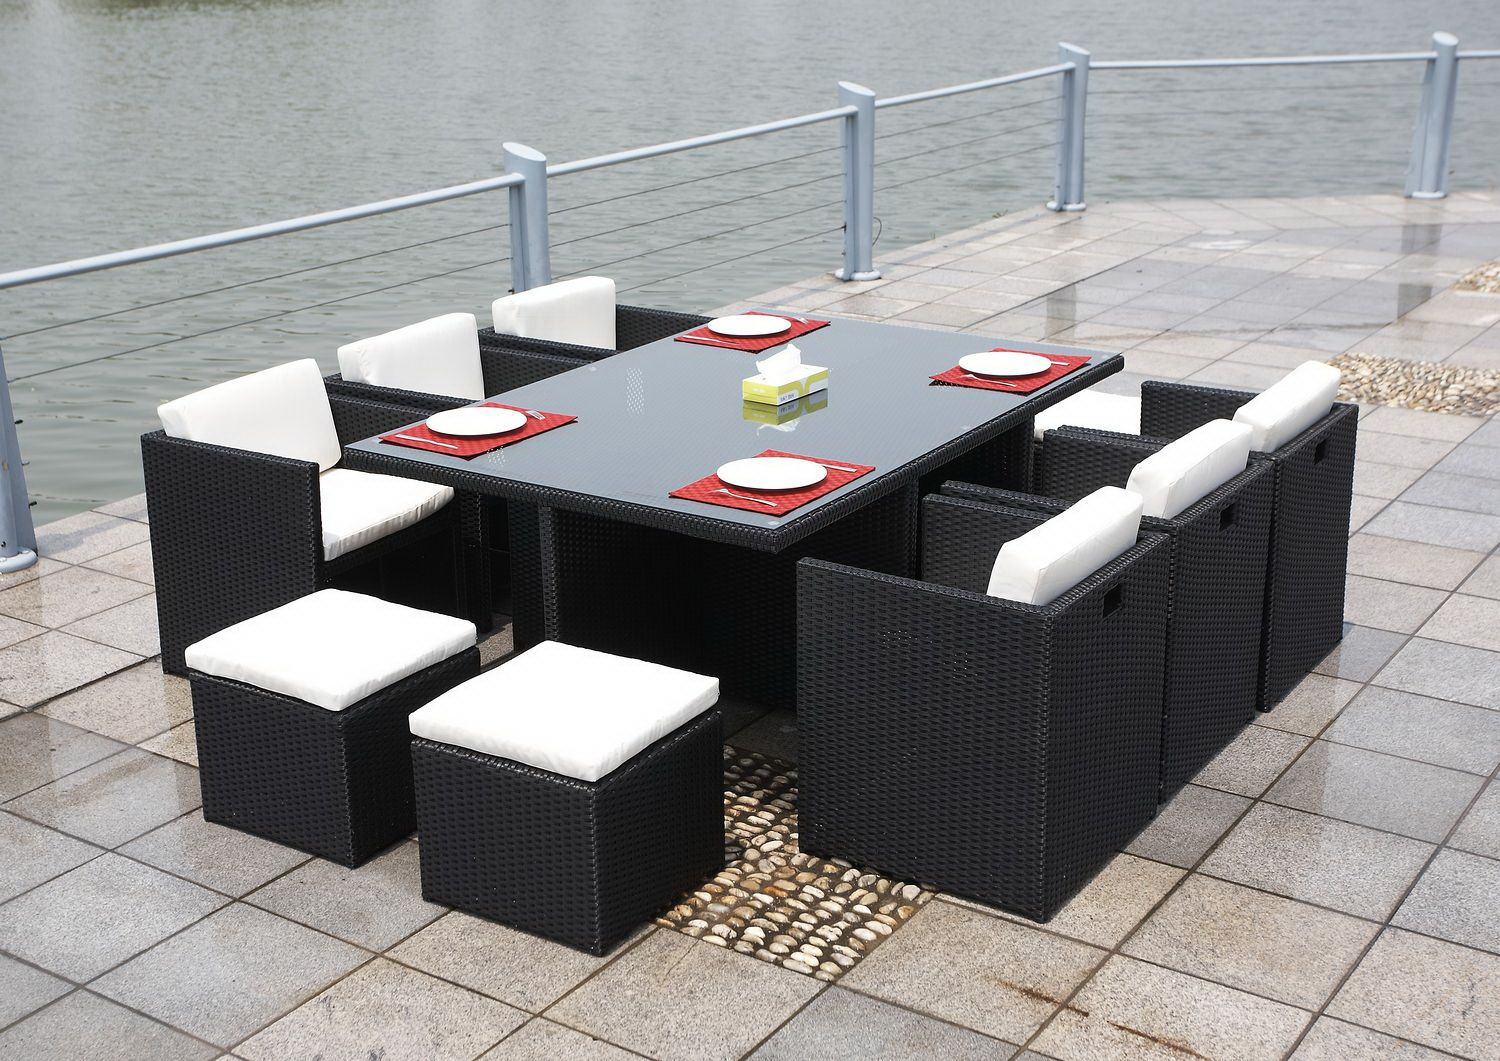 Marbella Rattan Cube Sets Are Welded Units So No Flat Pack Necessary